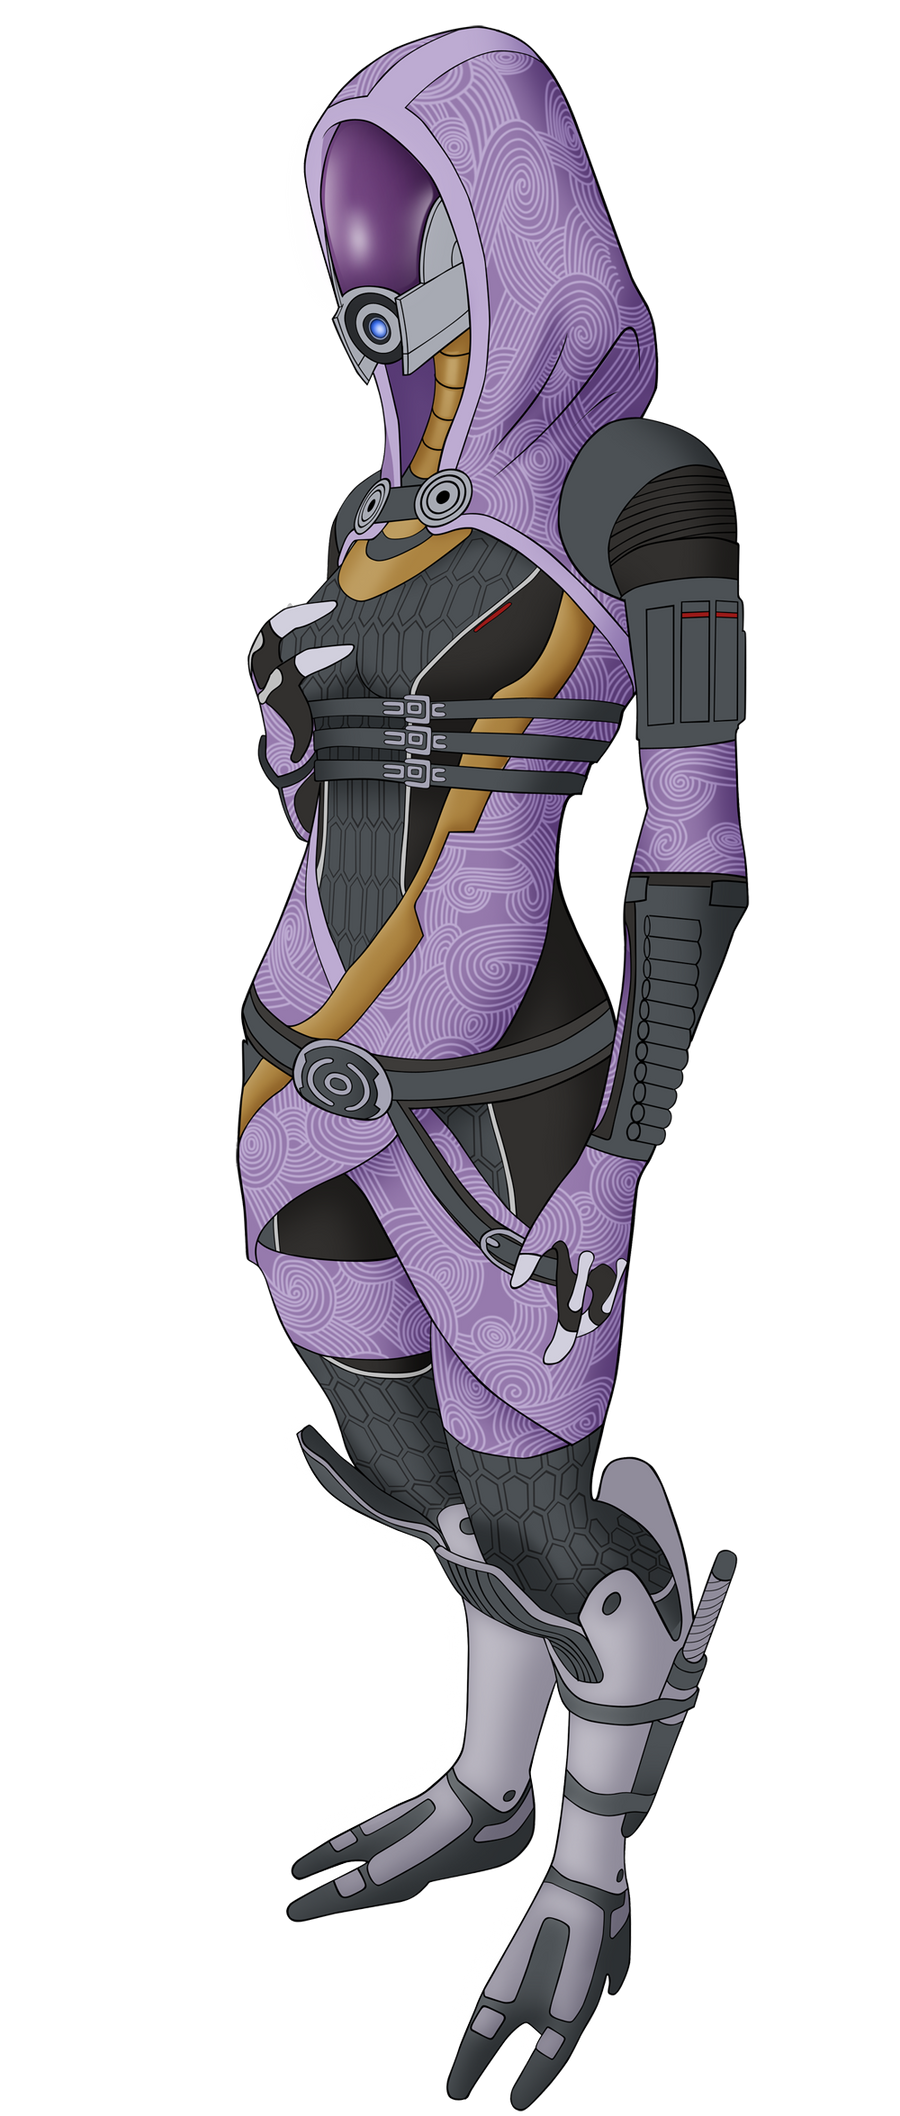 Tali by GunGoat